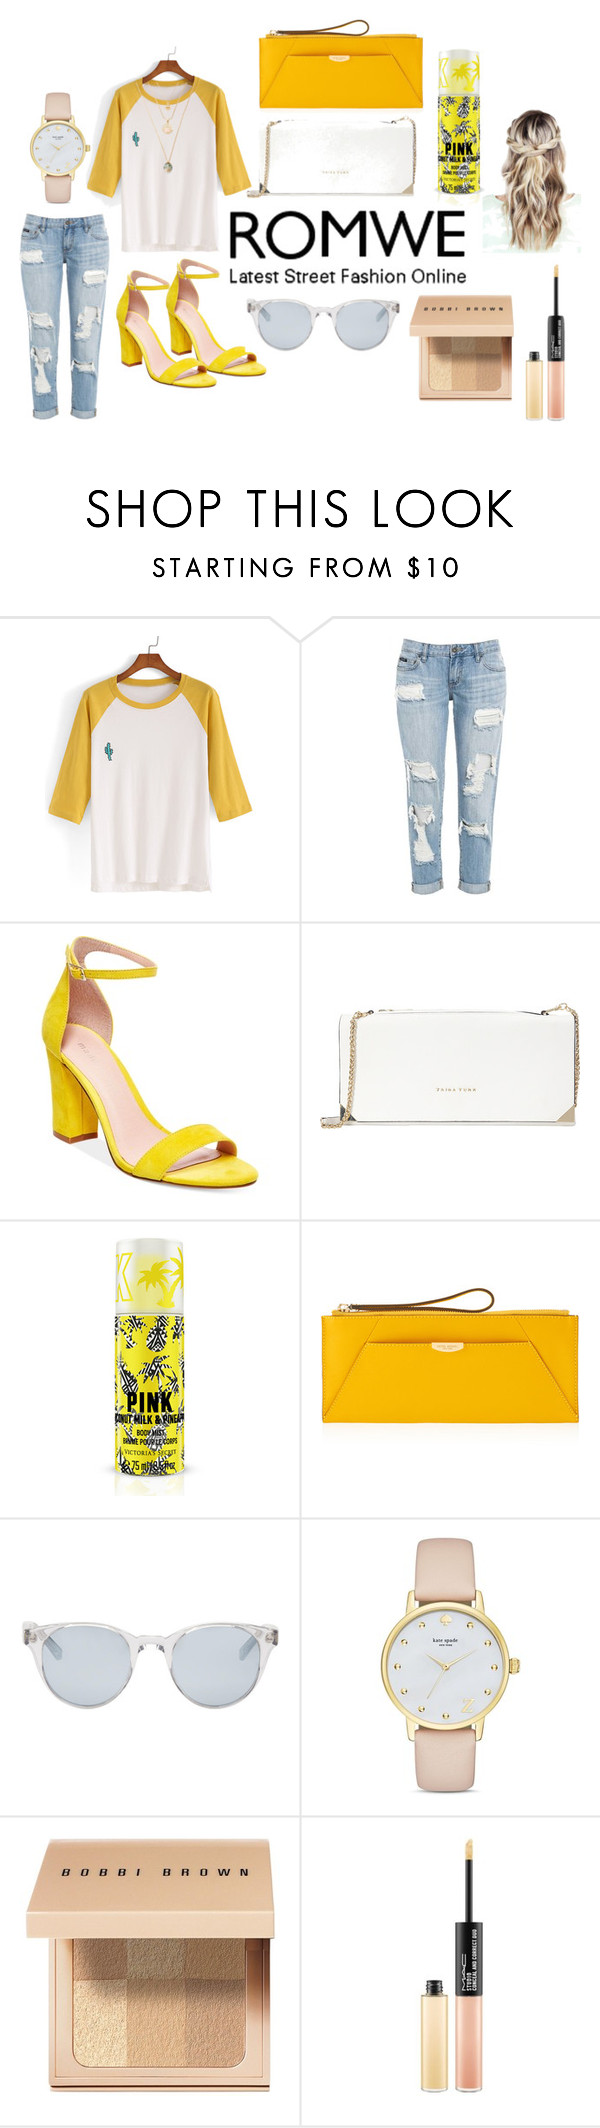 """Untitled #7"" by tashajulia on Polyvore featuring Madden Girl, Trina Turk, Henri Bendel, Sun Buddies, Kate Spade, Bobbi Brown Cosmetics and MAC Cosmetics"